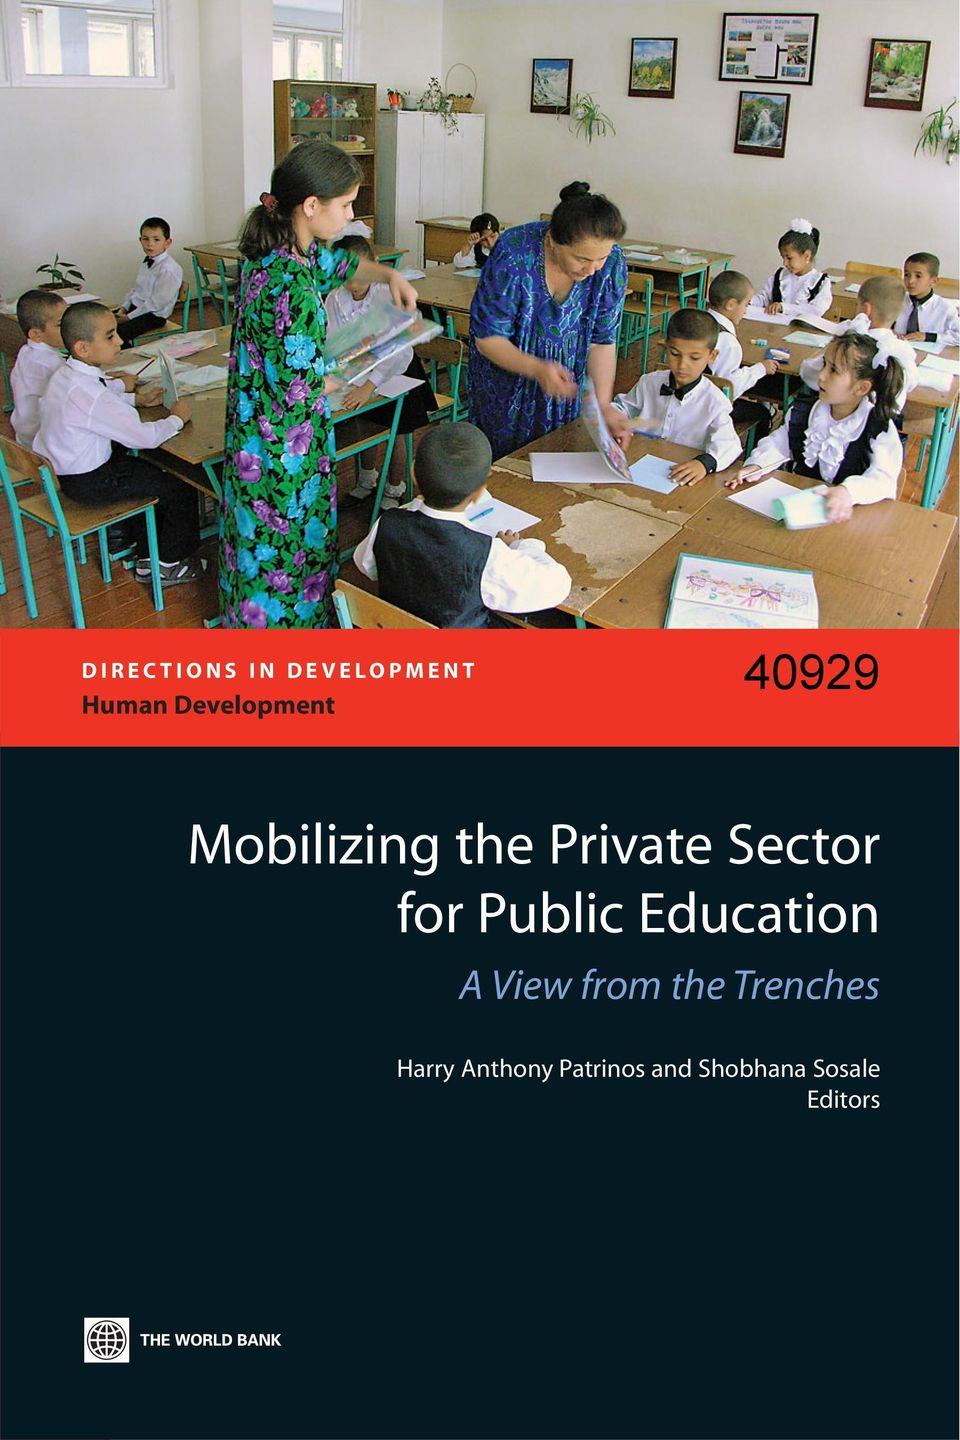 Public Education A View from the Trenches